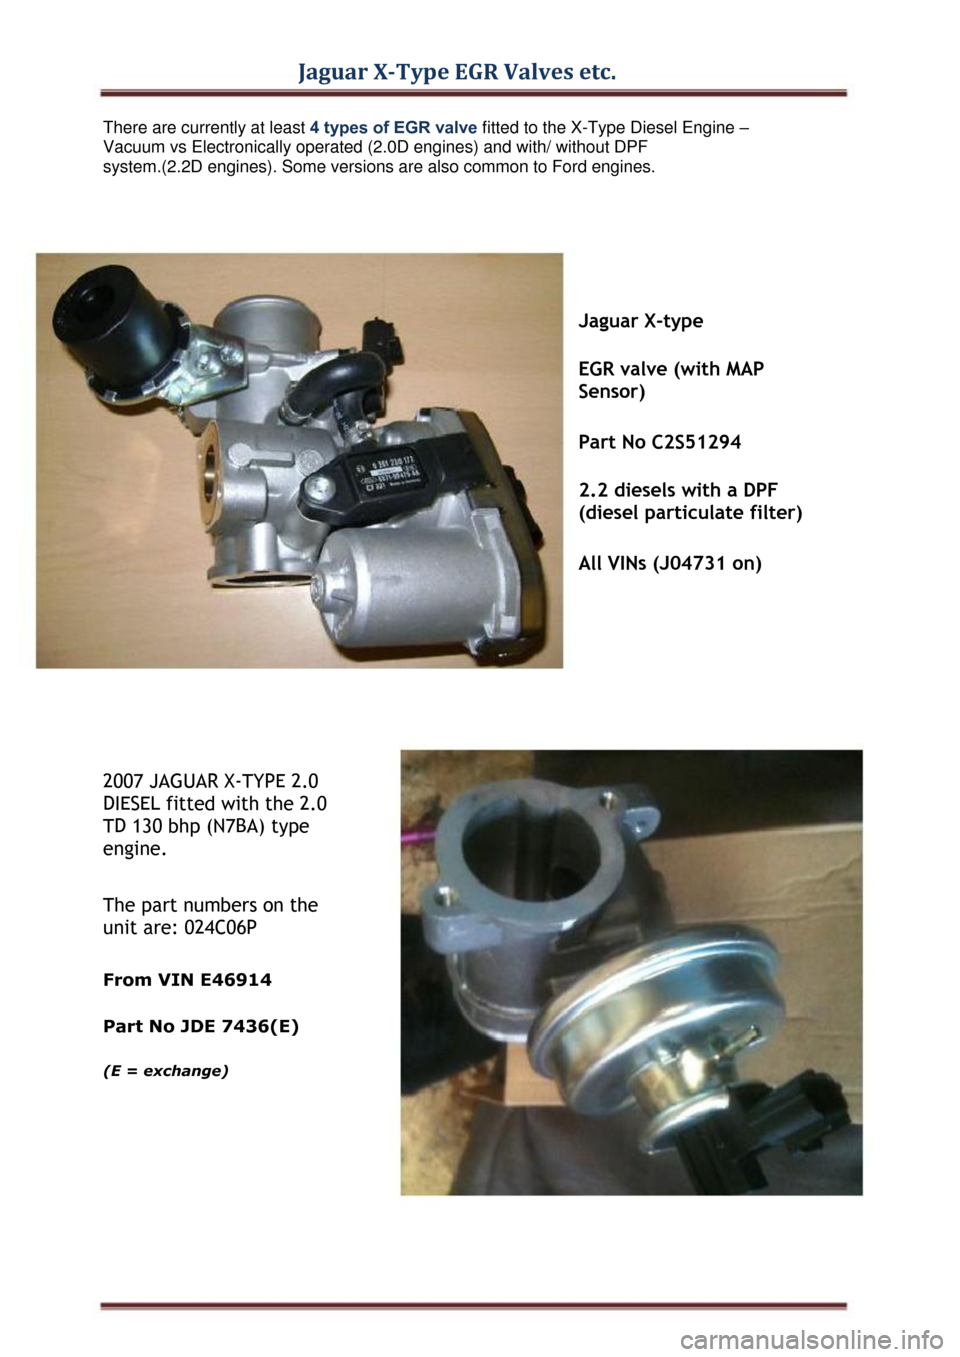 JAGUAR X TYPE 2004 1.G EGR Valves Parts Manual Jaguar X-Type EGR Valves etc.  There are currently at least 4 types of EGR valve fitted to the X-Type Diesel Engine –  Vacuum vs Electronically operated (2.0D engines) and with/ without DPF  system.